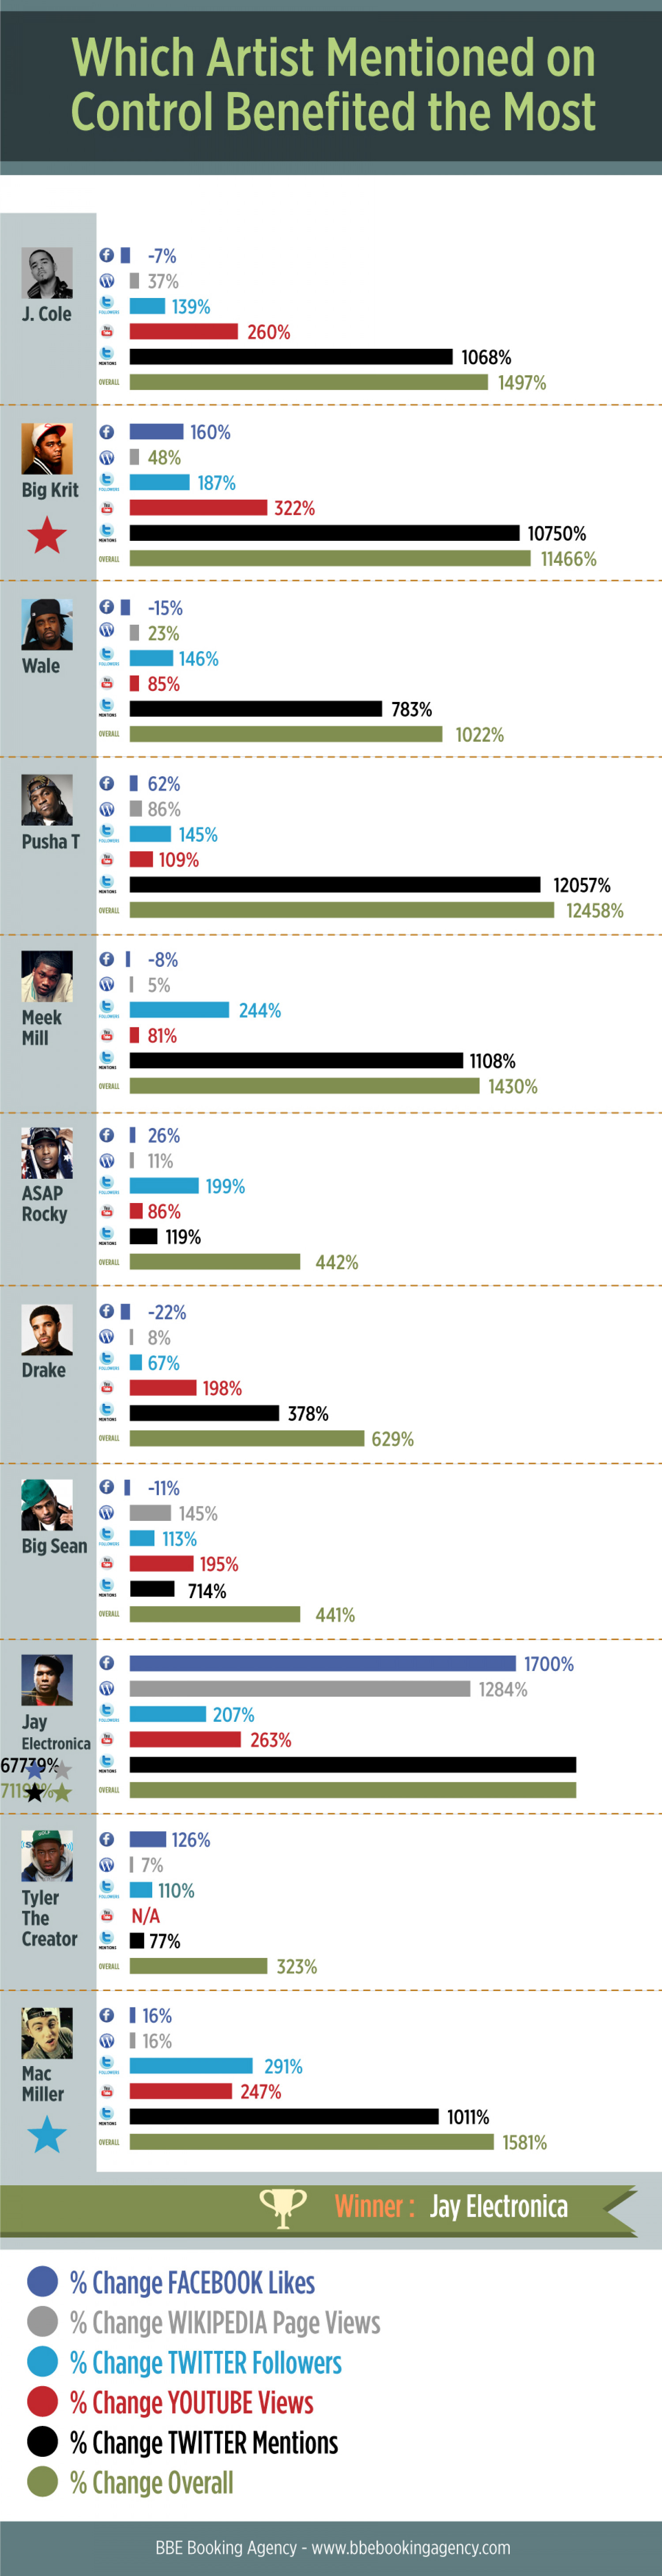 Which Artist Mentioned By Kendrick Lamar on Control Benefited The Most Infographic